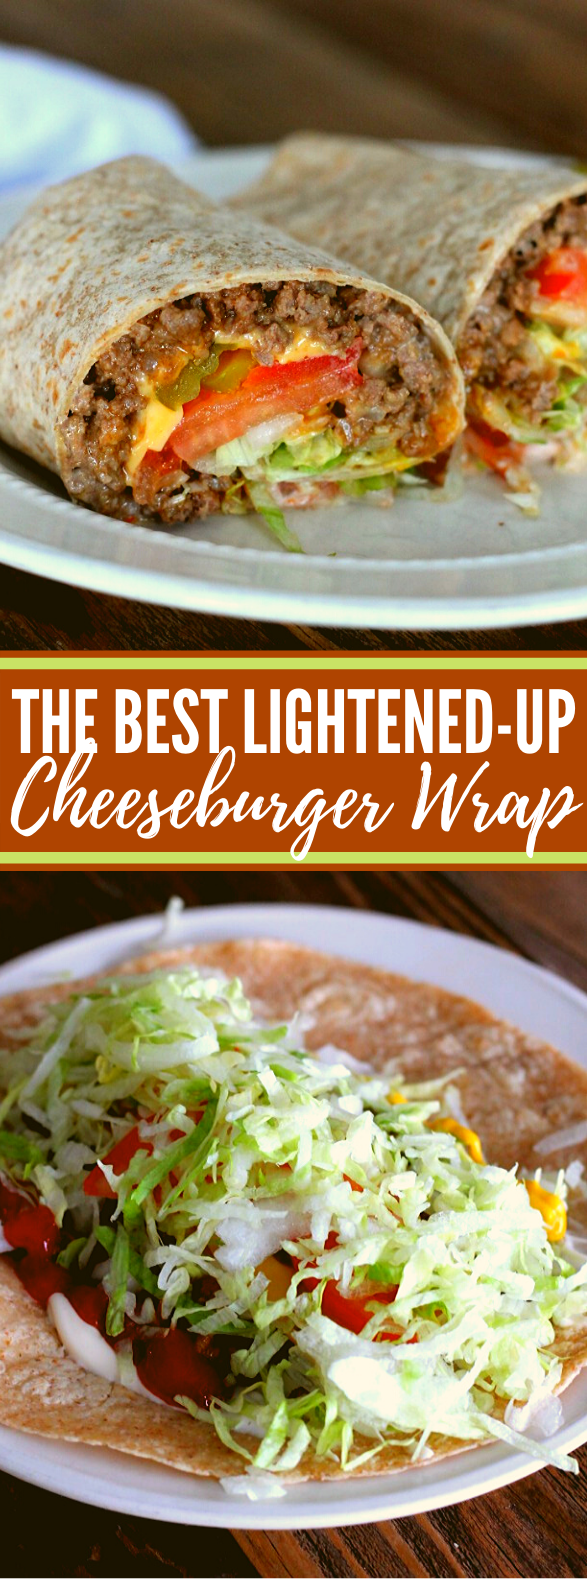 The Best Lightened-up Cheeseburger Wrap #lunch #dinner